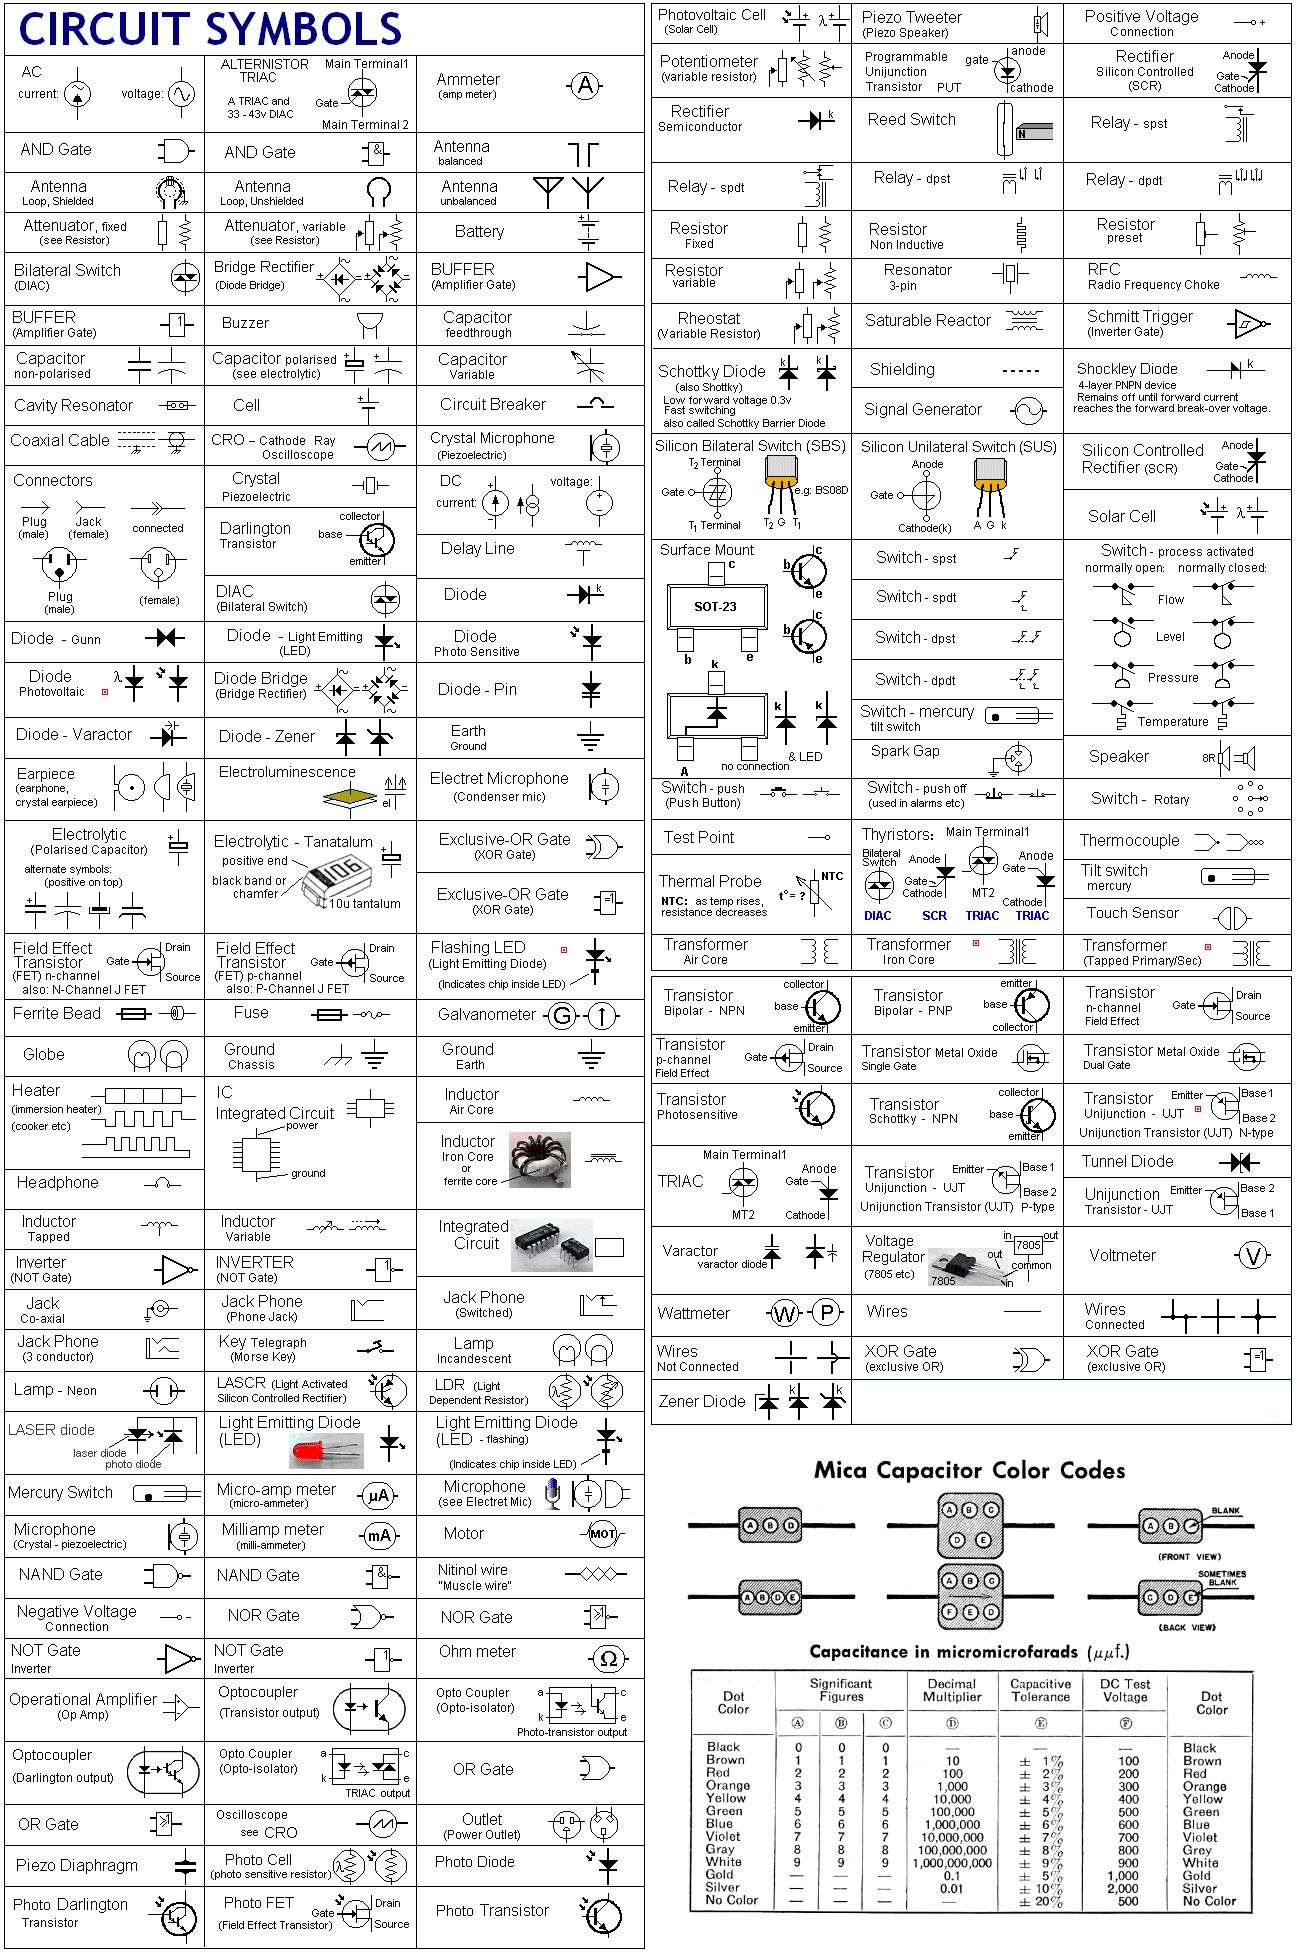 Wiring Diagram Symbol For Relay Universal Power Window Images About Schematic Symbols On Pinterest Buzzer